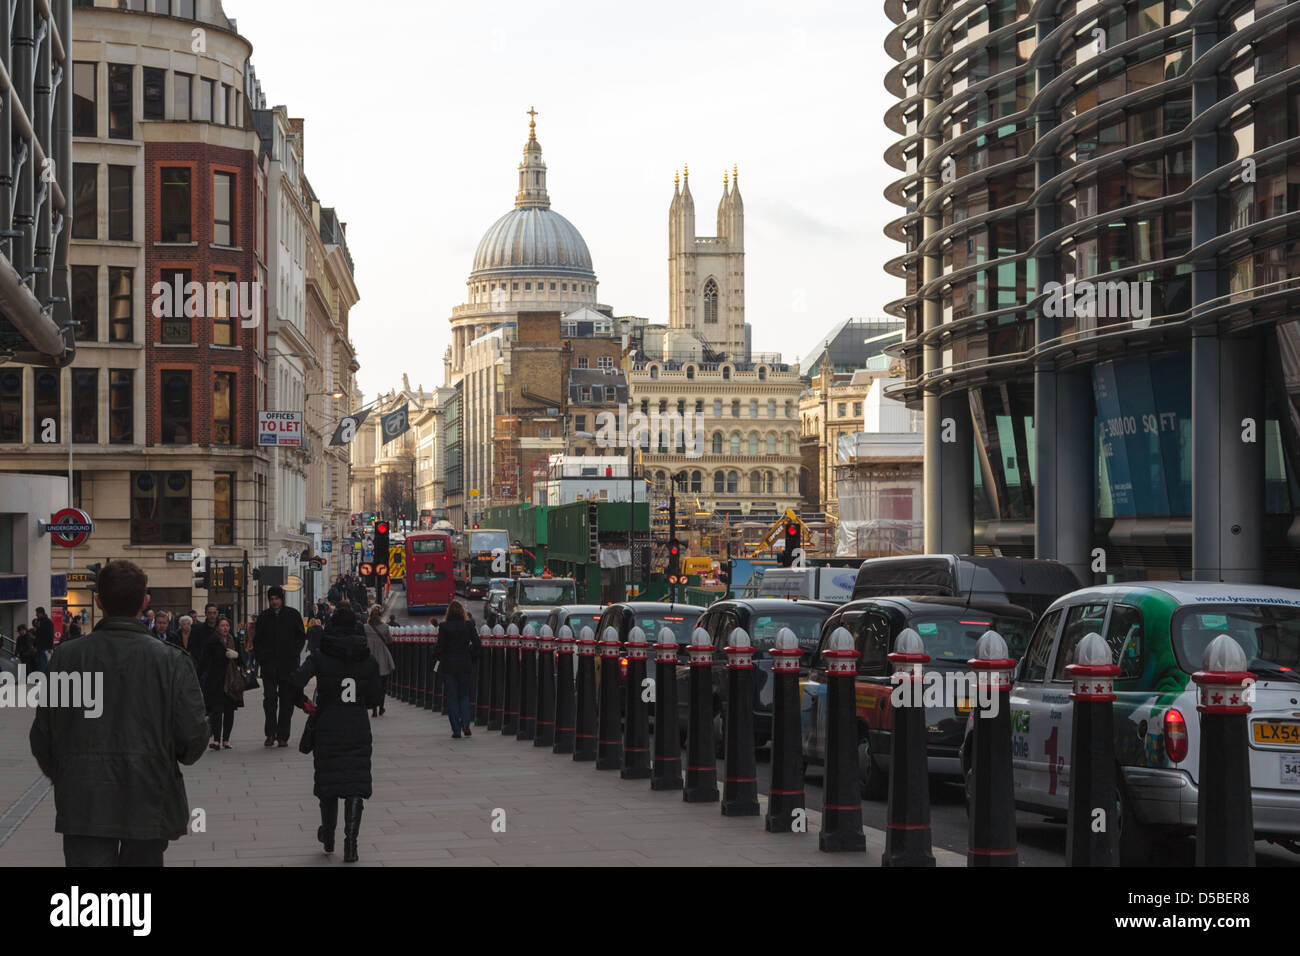 Taxis, traffic and people on Cannon Street, London with St. Paul's Cathedral visible in the distance - Stock Image